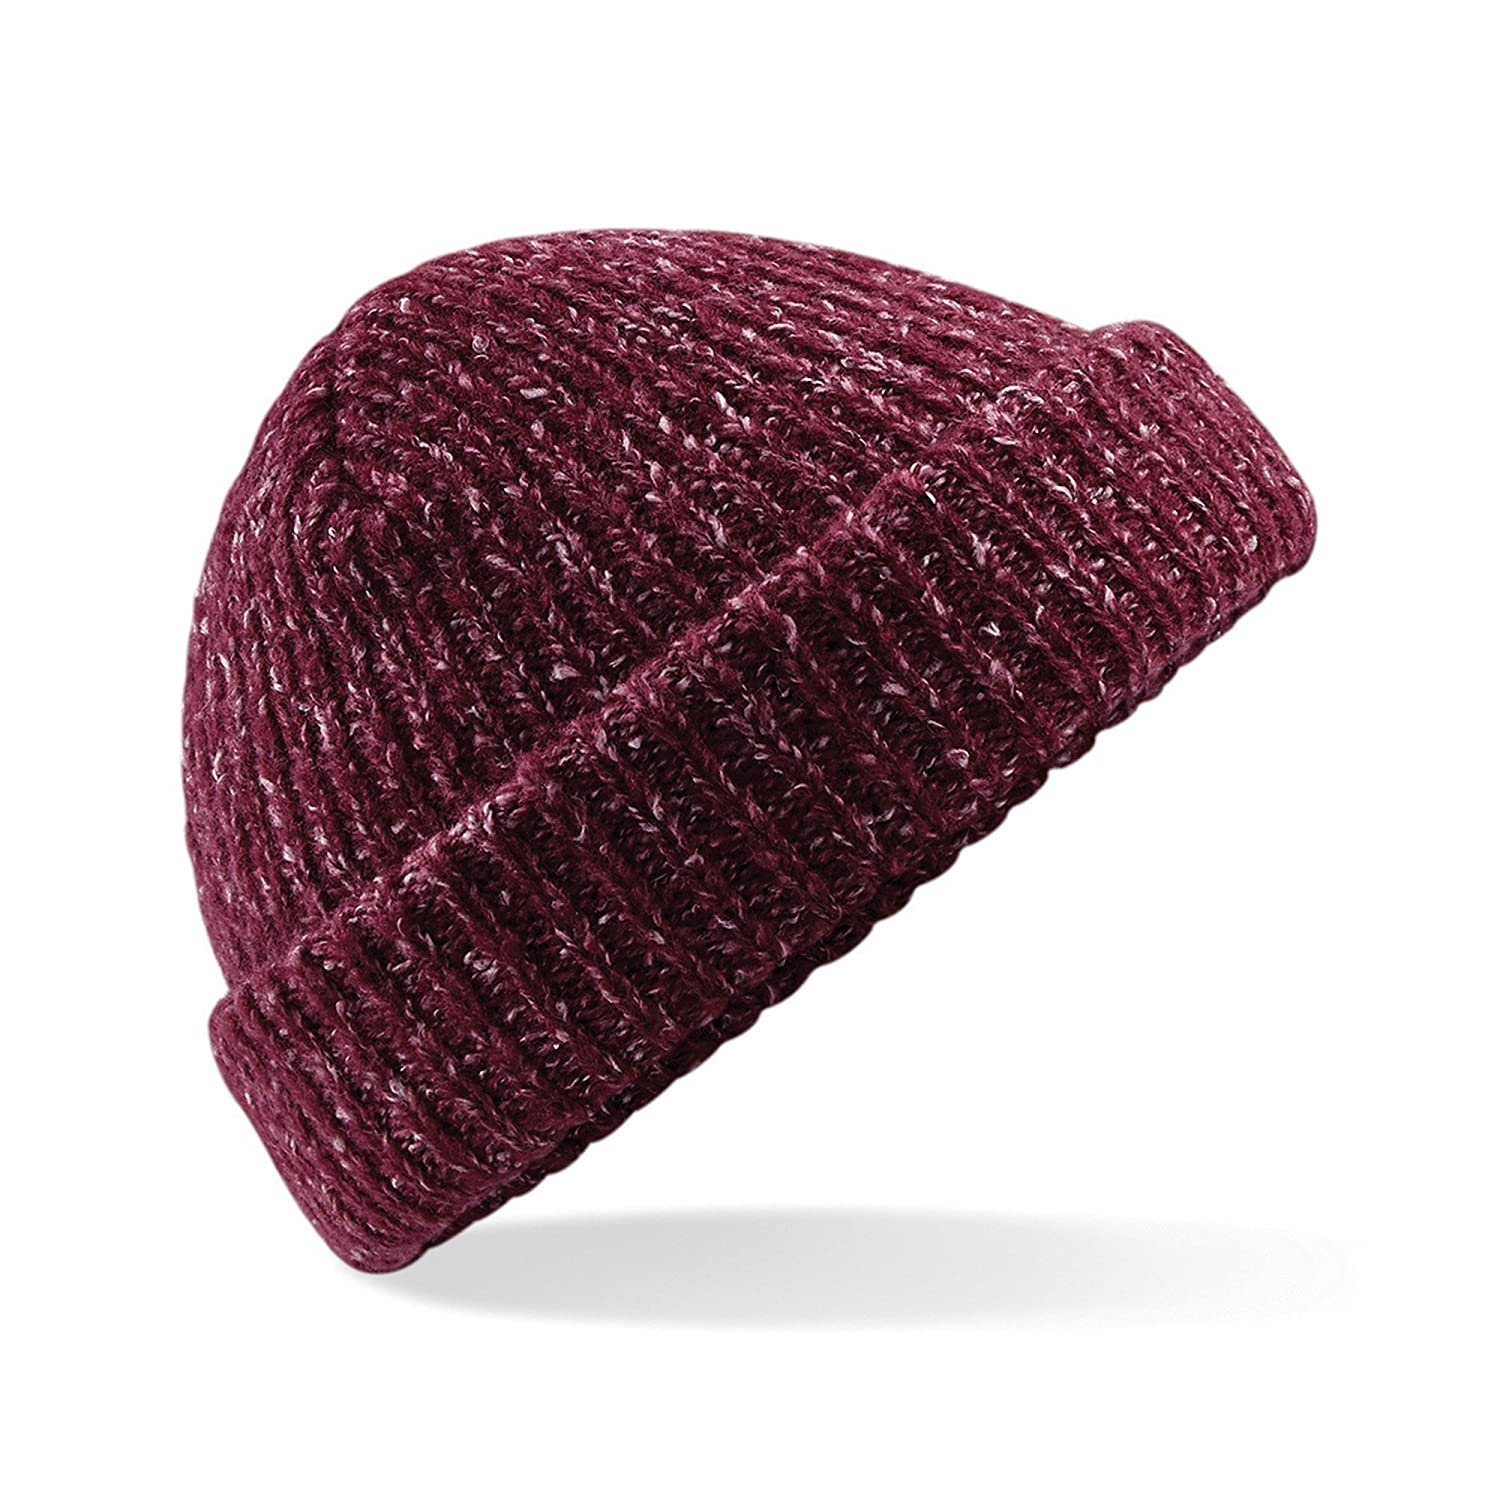 c93a4a75811 Amazon.com  Beechfield Unisex Adults Glencoe Knitted Winter Beanie Hat (One  Size) (Black Fleck)  Clothing